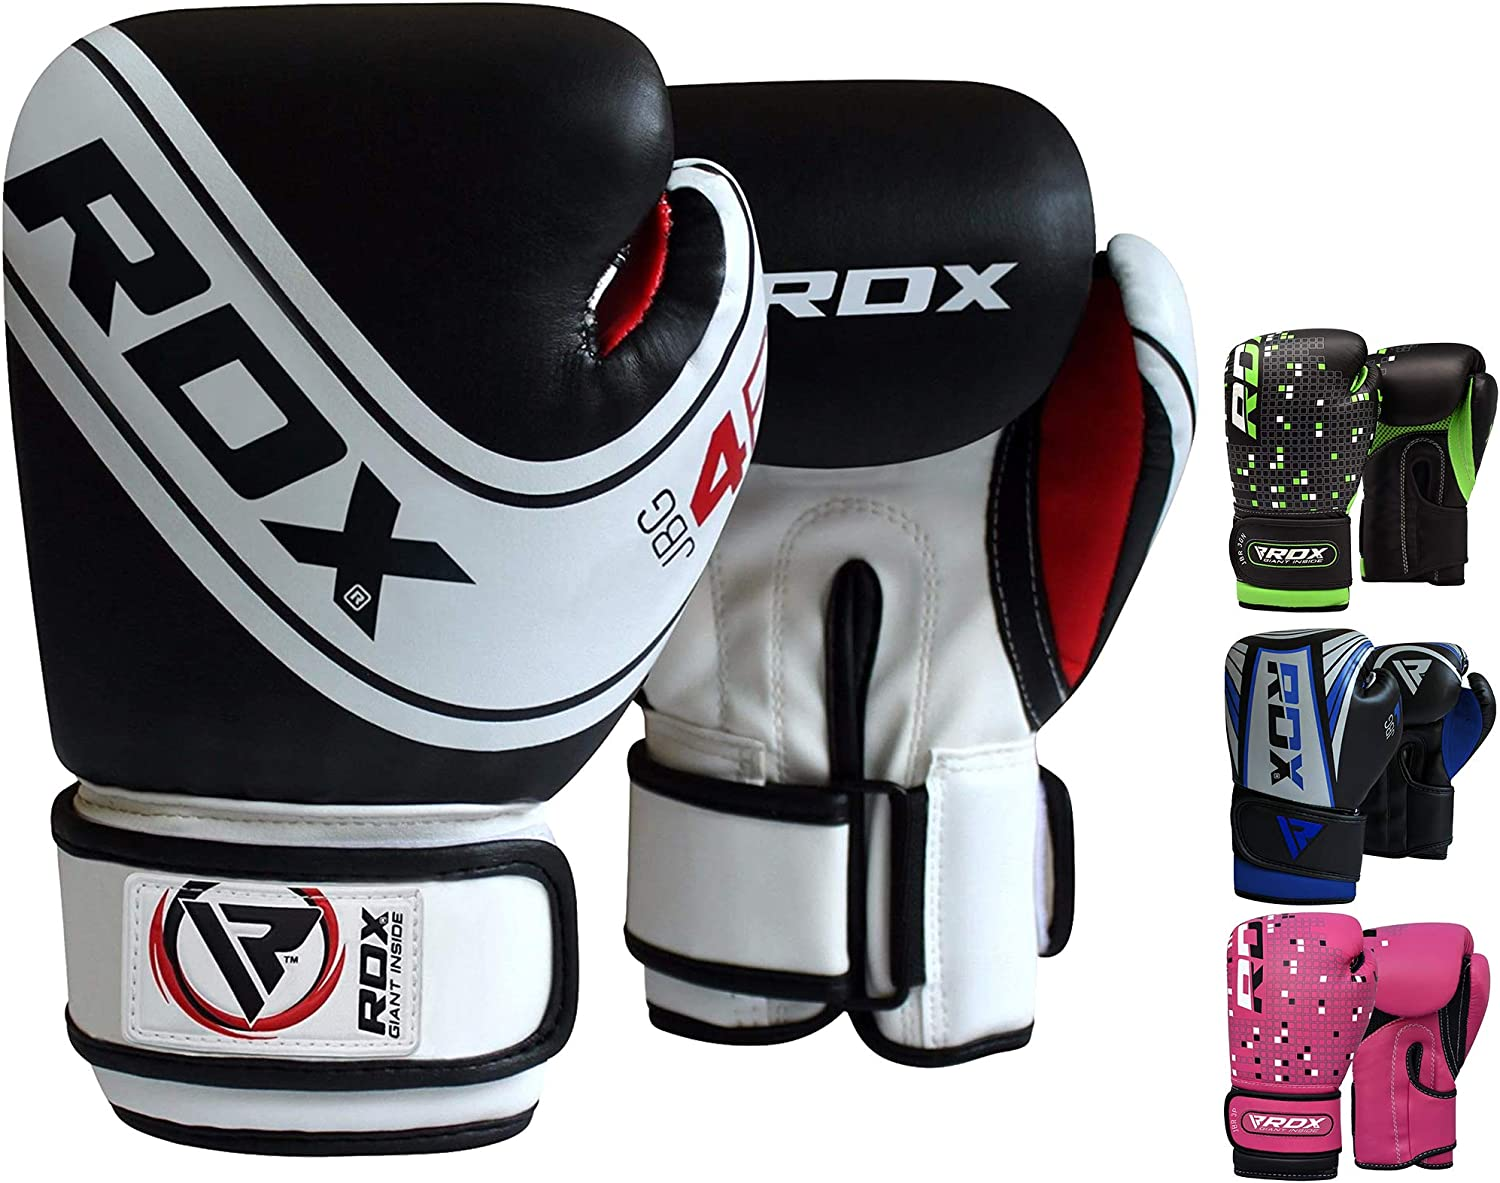 REX Boxing Gloves Sparring Punch Bag Glove Fighting Punches Training Mitts